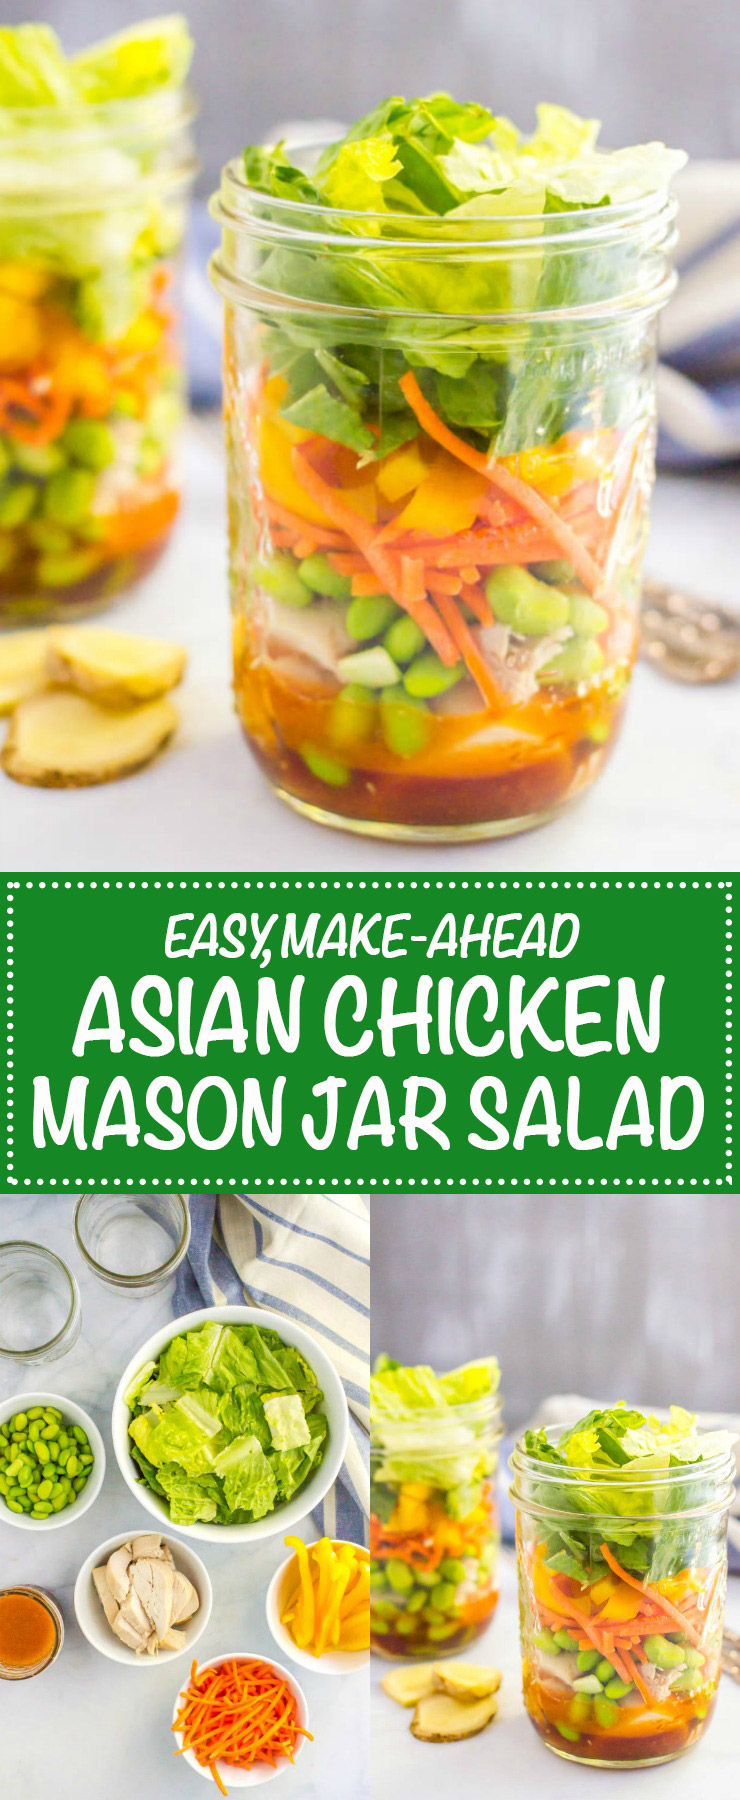 Asian chicken mason jar salad with rotisserie chicken, edamame, carrots, peppers and an easy sesame soy dressing are perfect for a make-ahead lunch! | www.familyfoodonthetable.com